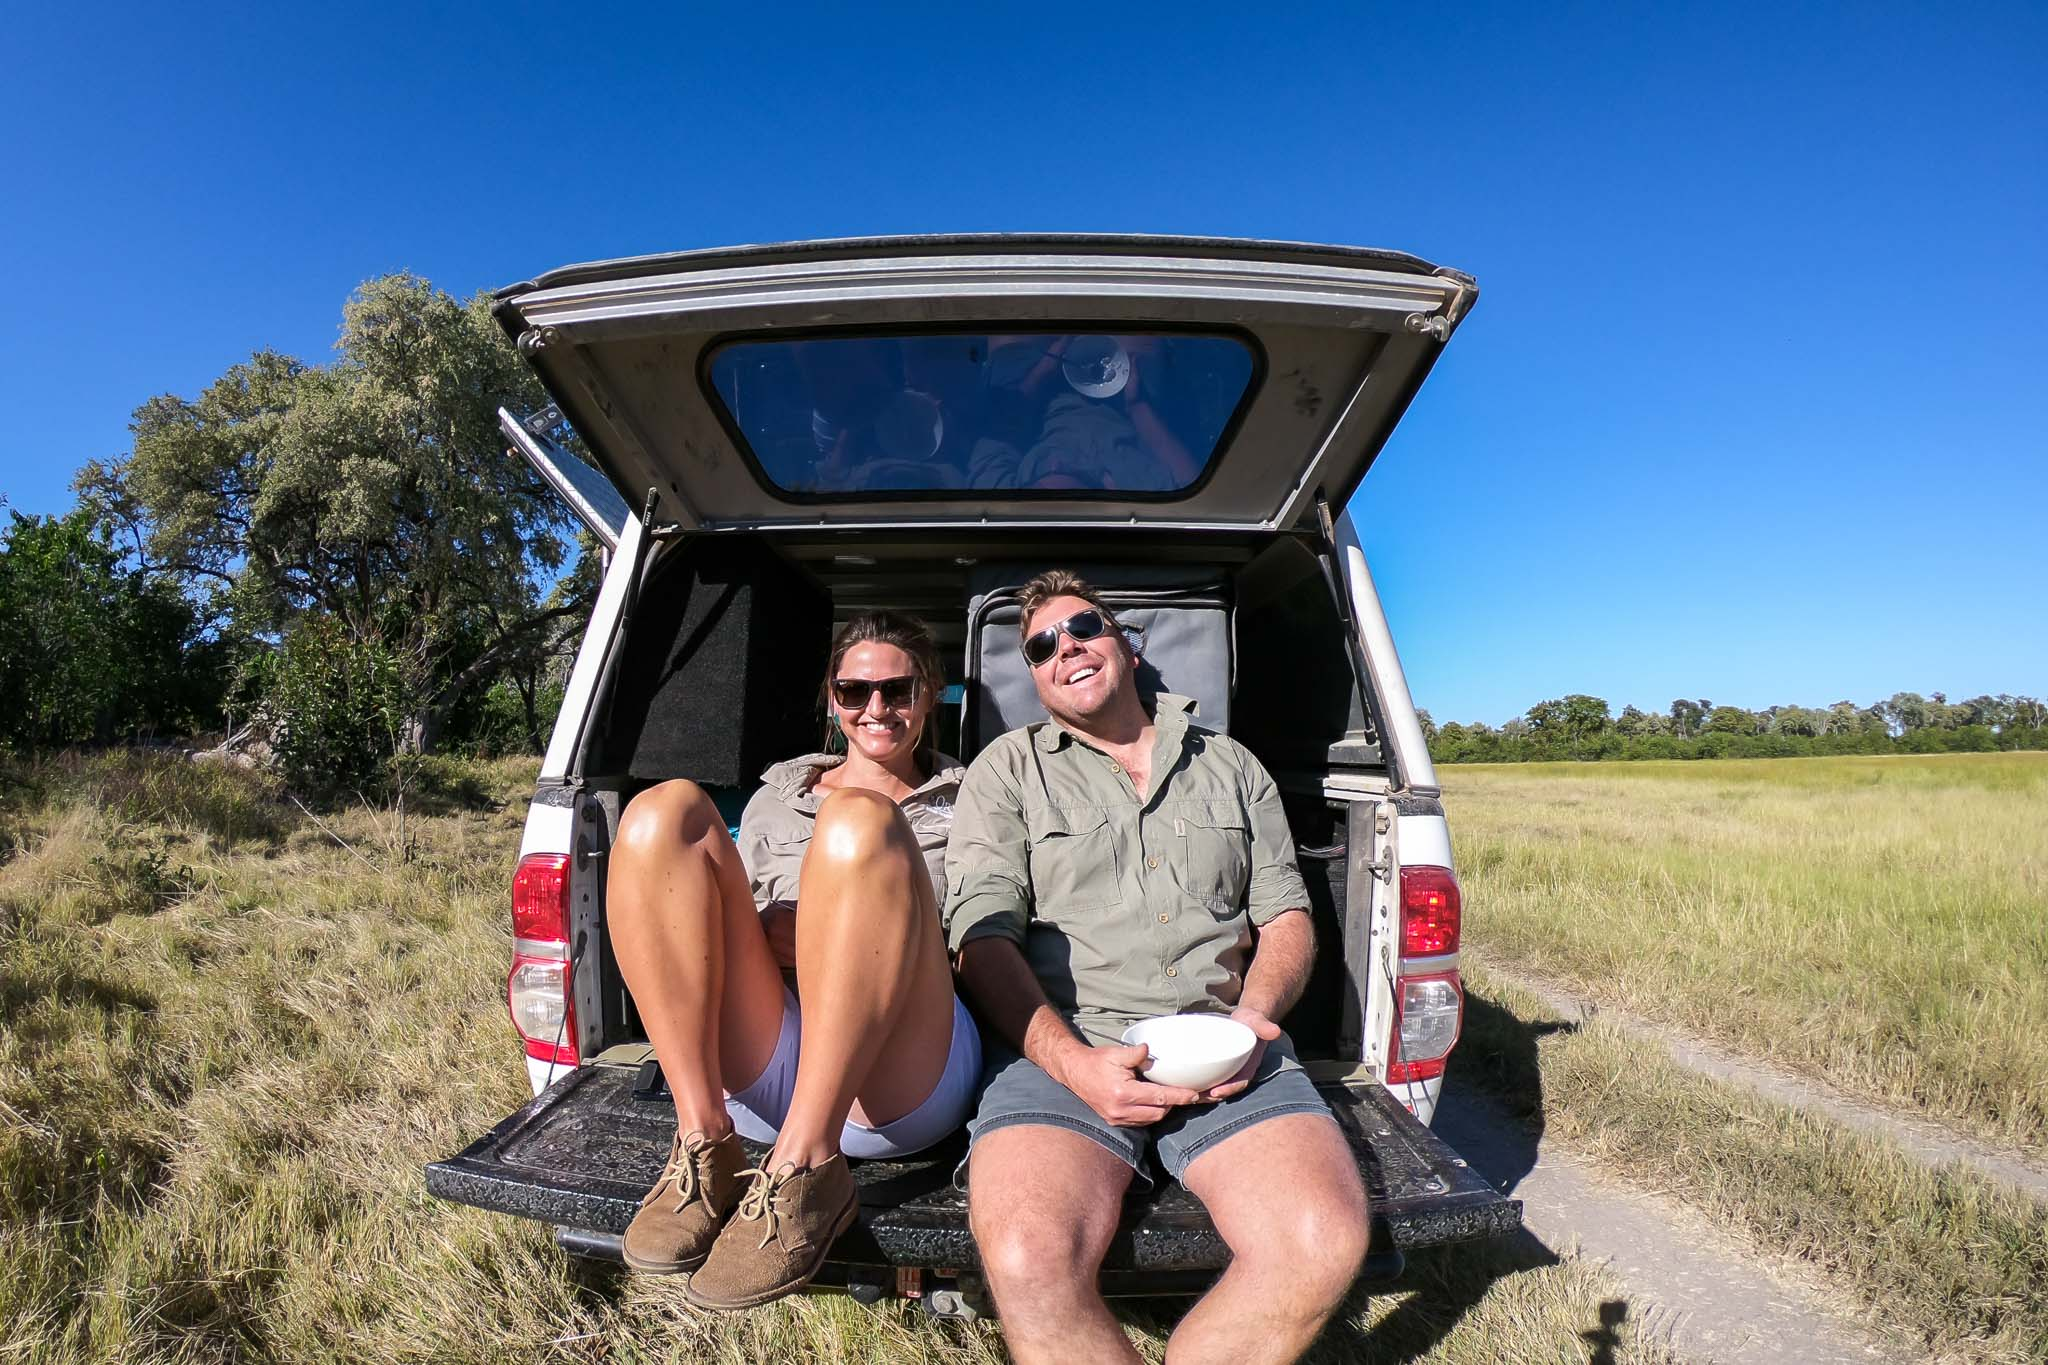 Stew and Kirst Overlanding